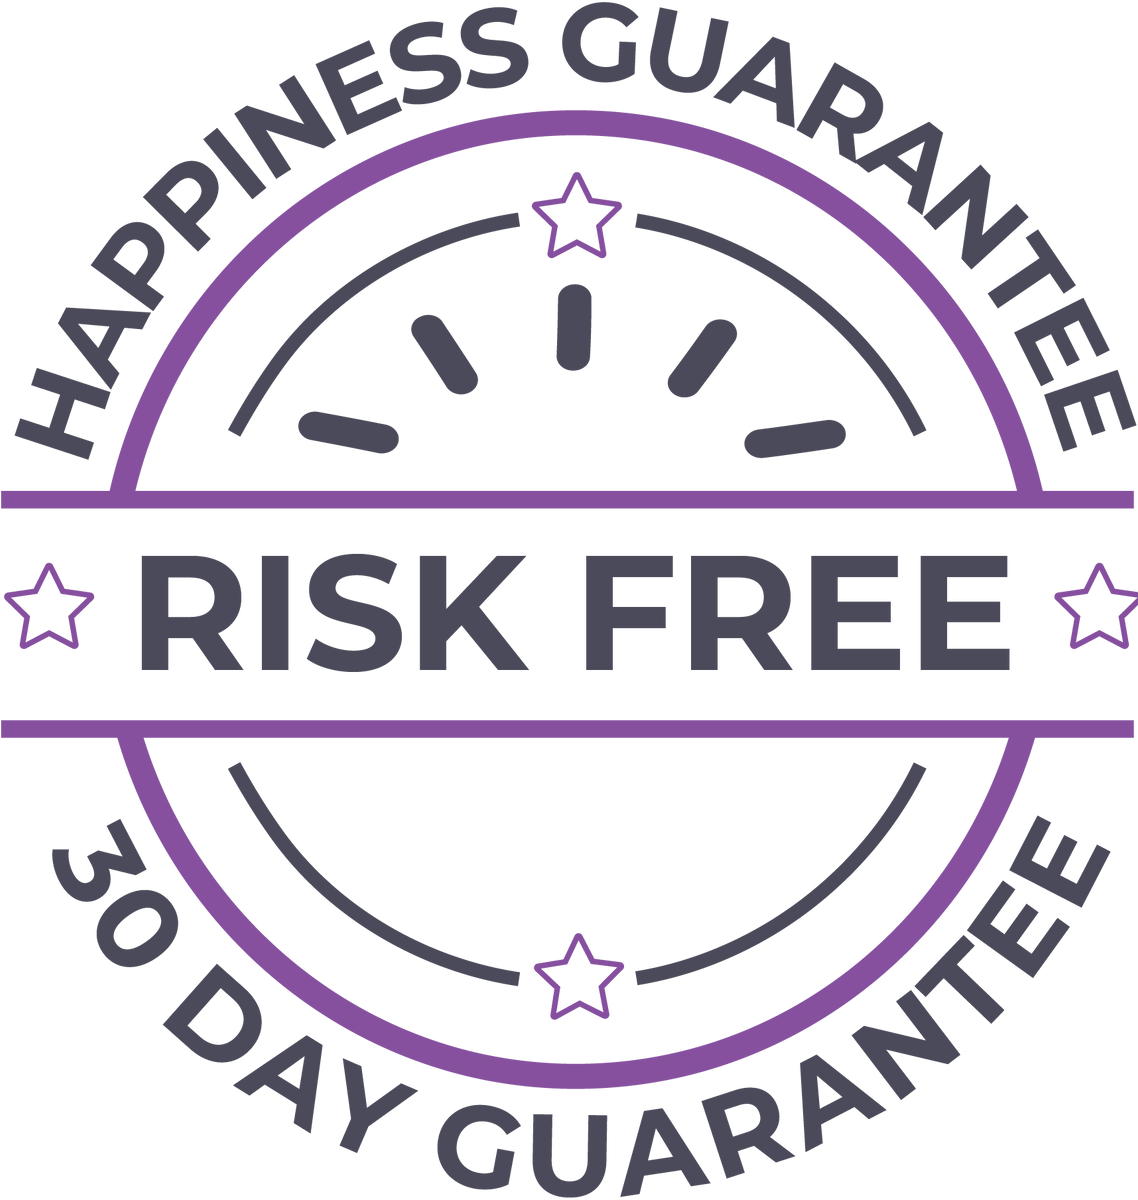 30 day risk-free happiness guarantee seal